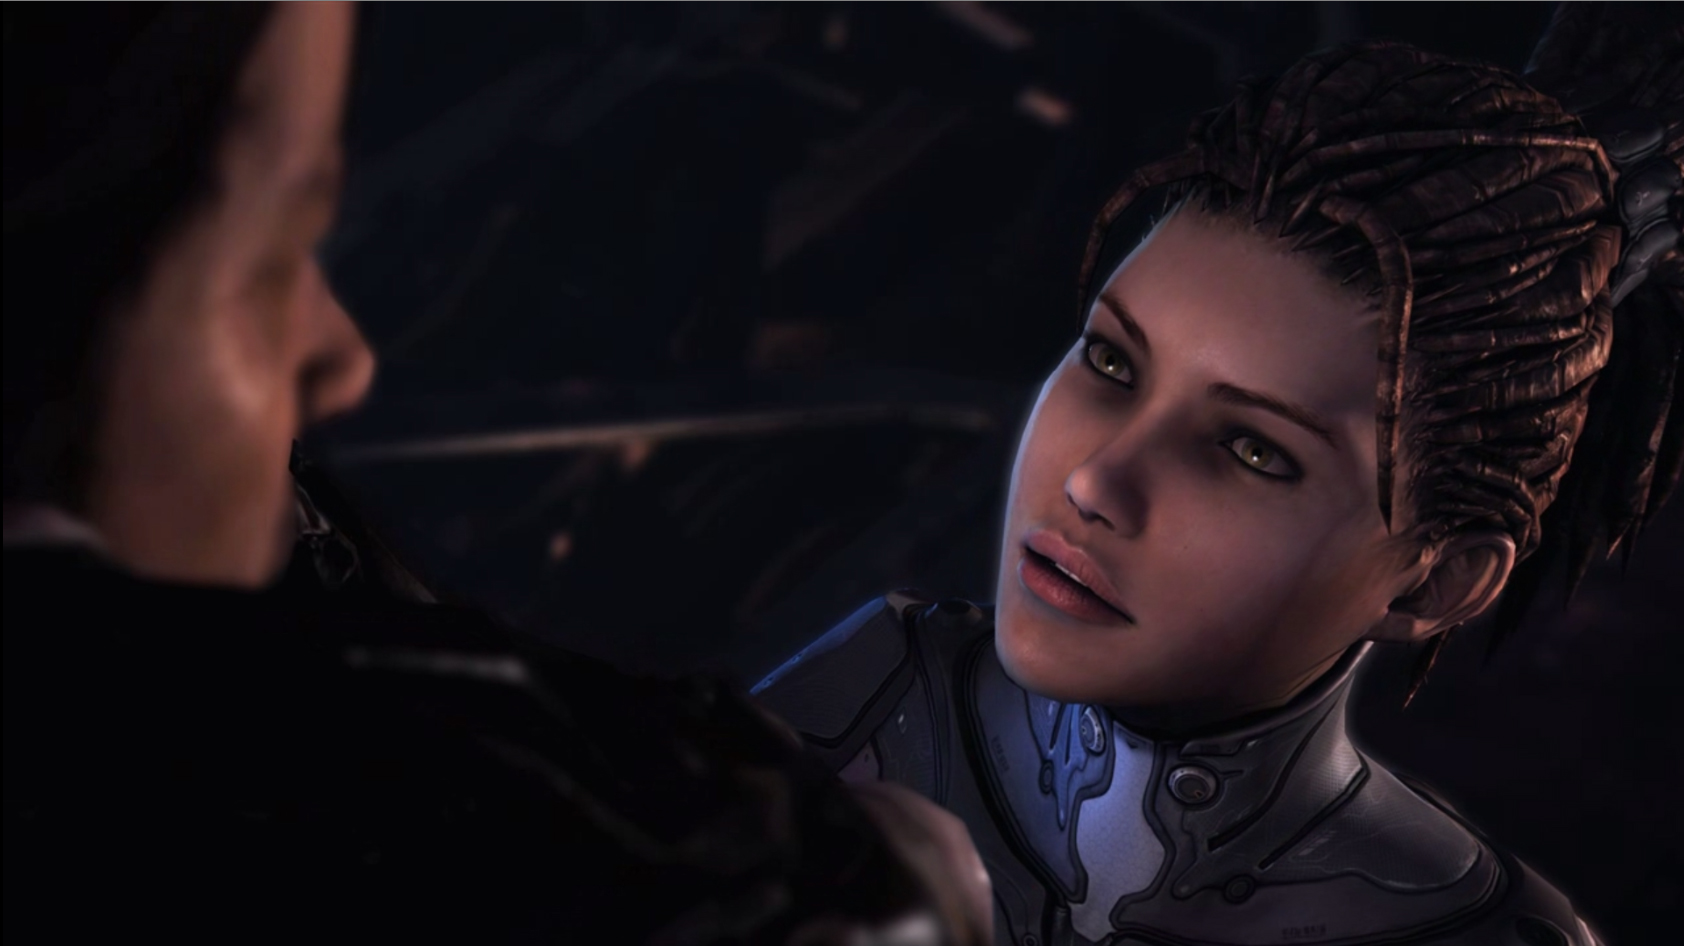 raynor and kerrigan relationship tips